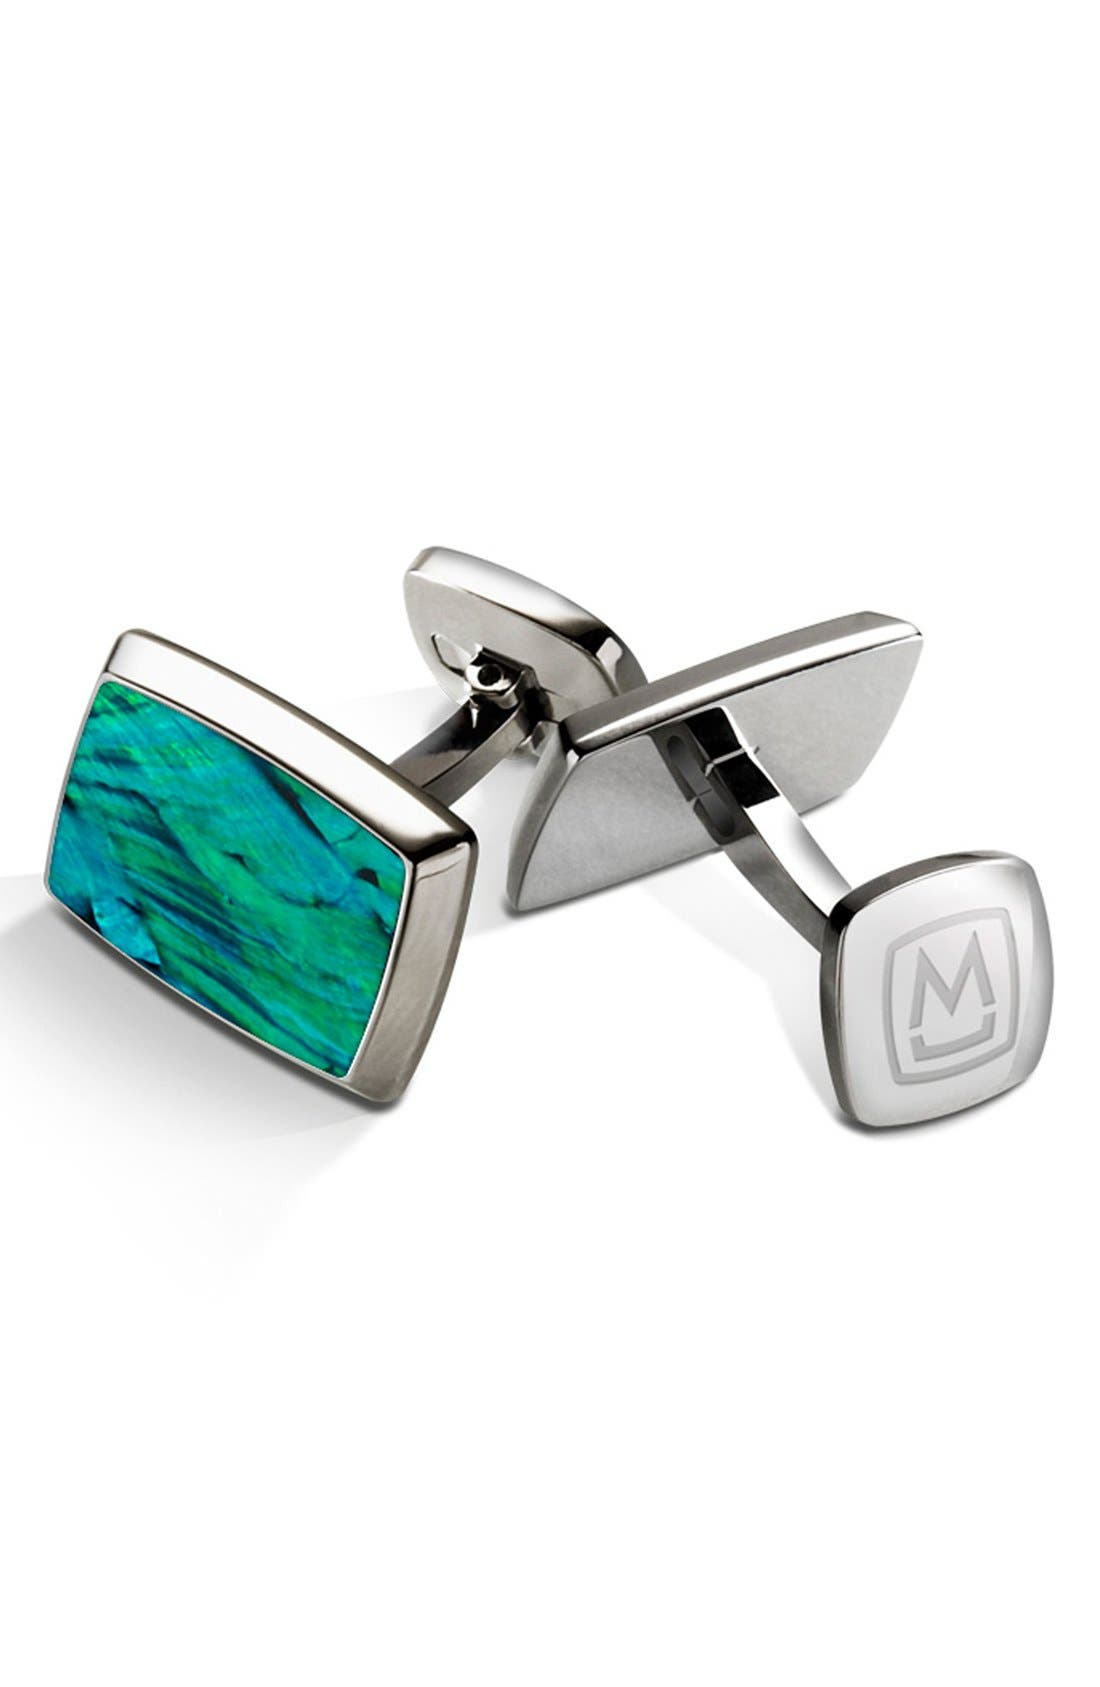 Abalone Cuff Links,                             Main thumbnail 1, color,                             STAINLESS STEEL/ TEAL